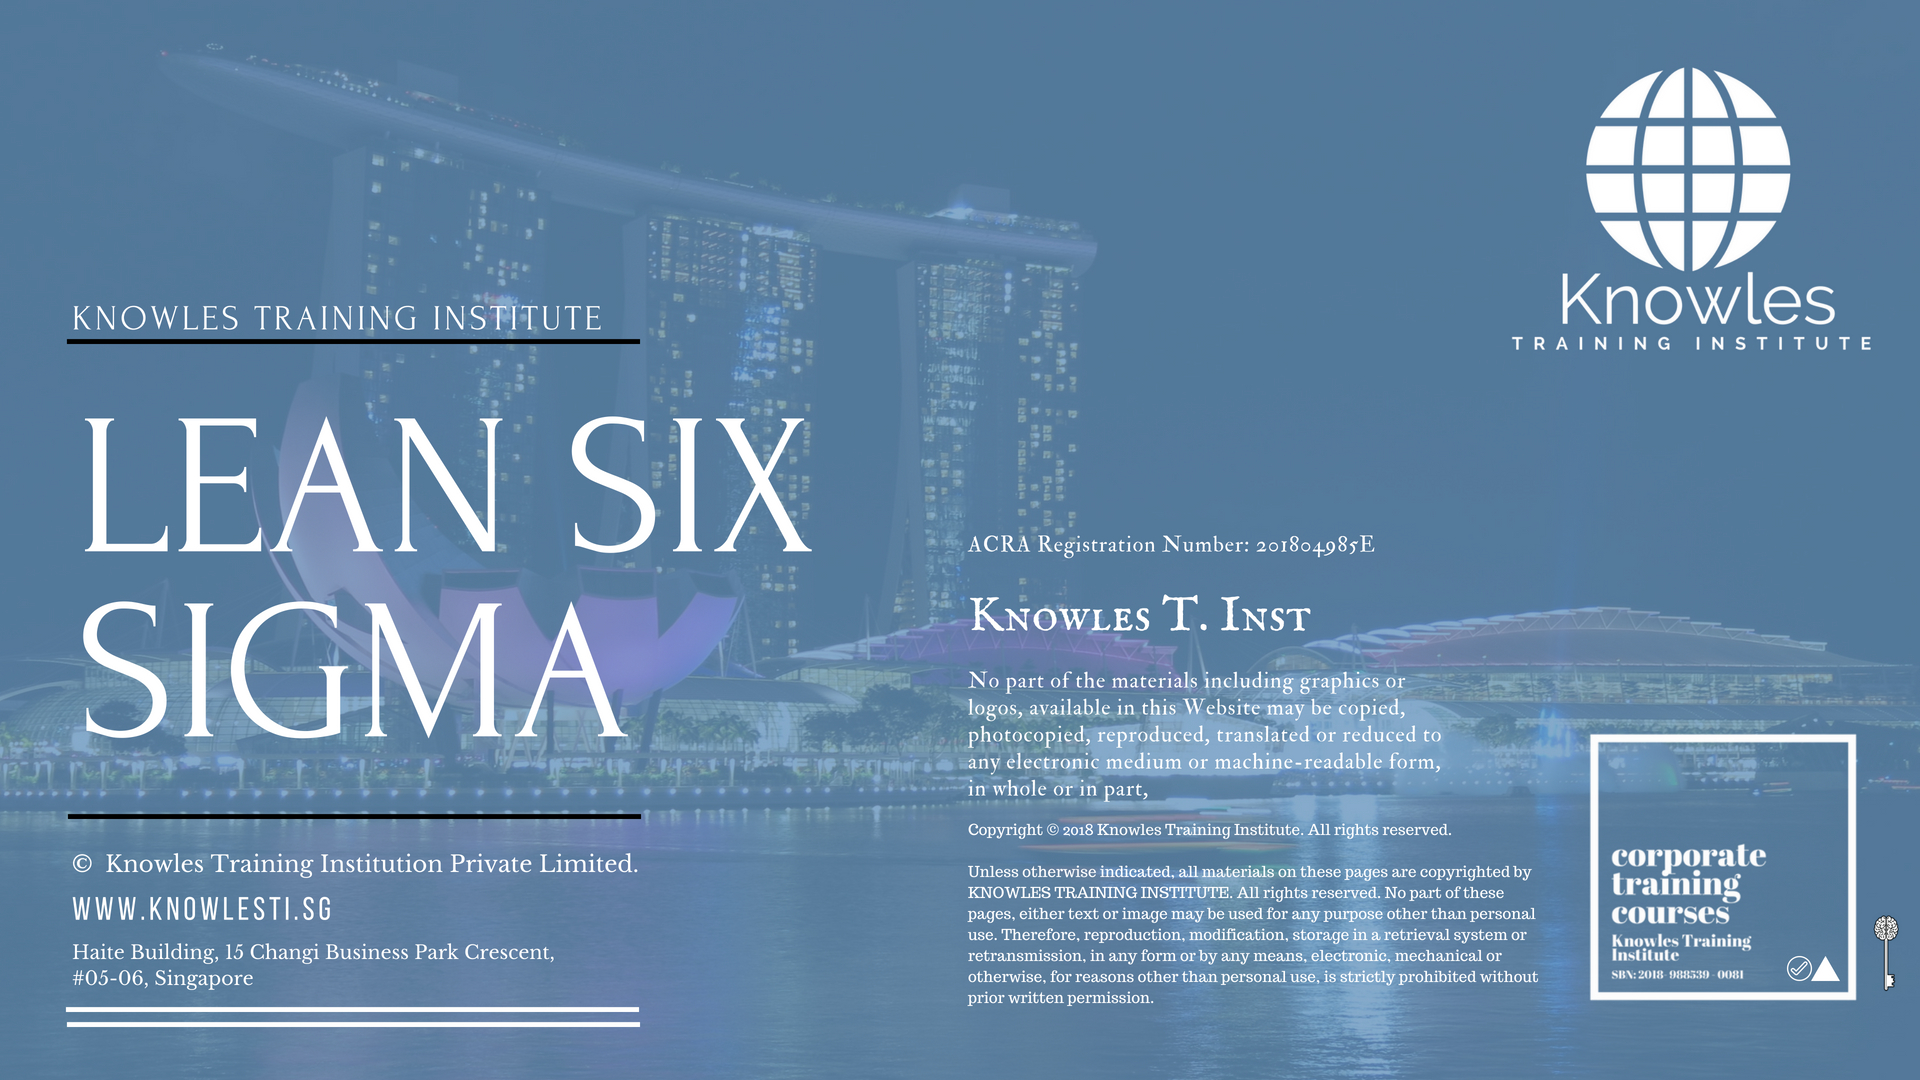 Lean Six Sigma Training Course In Singapore Knowles Training Institute